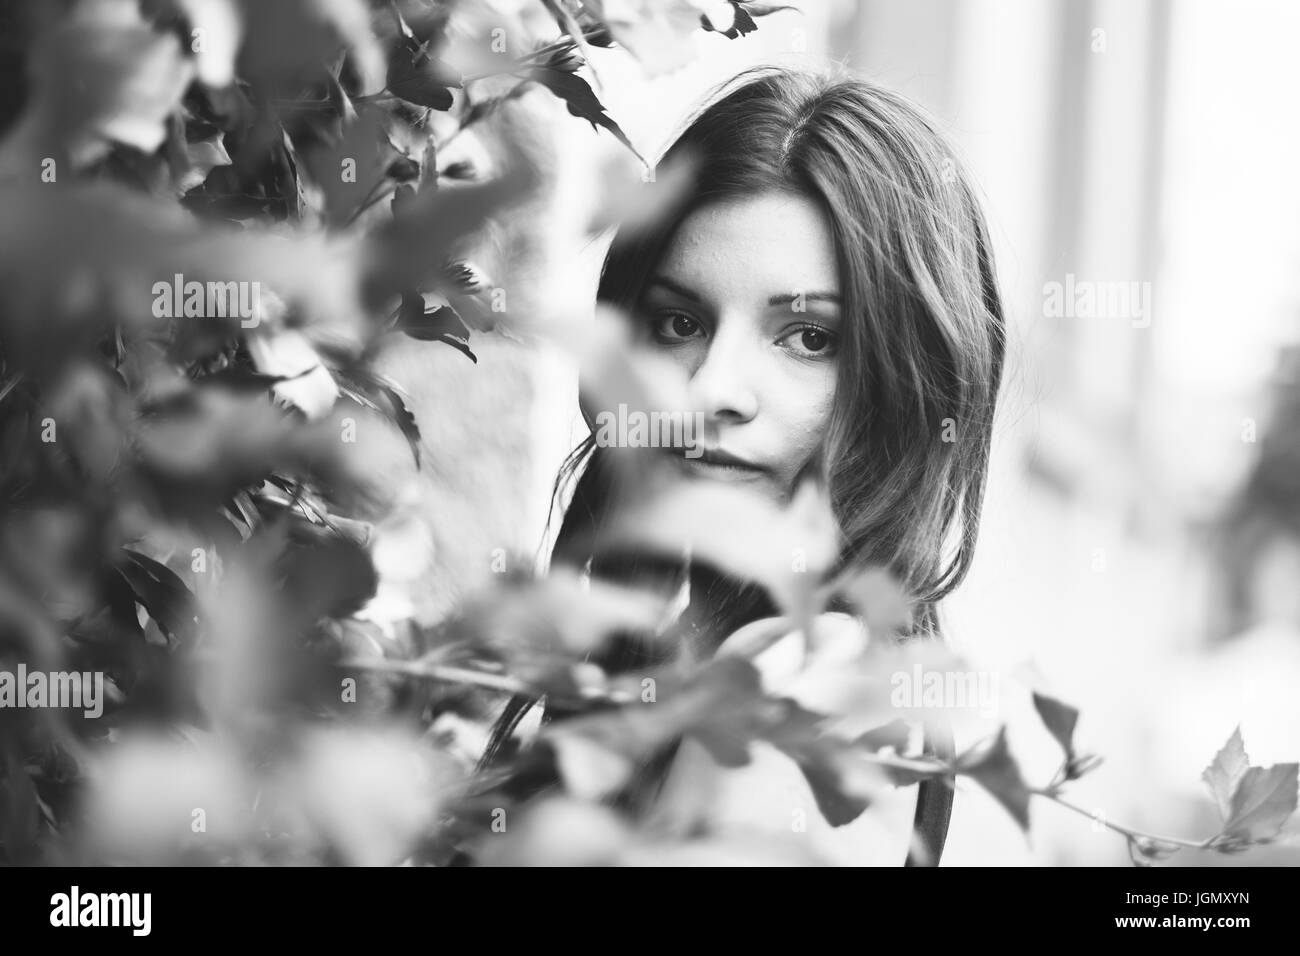 Creative photo of sad young woman - Stock Image